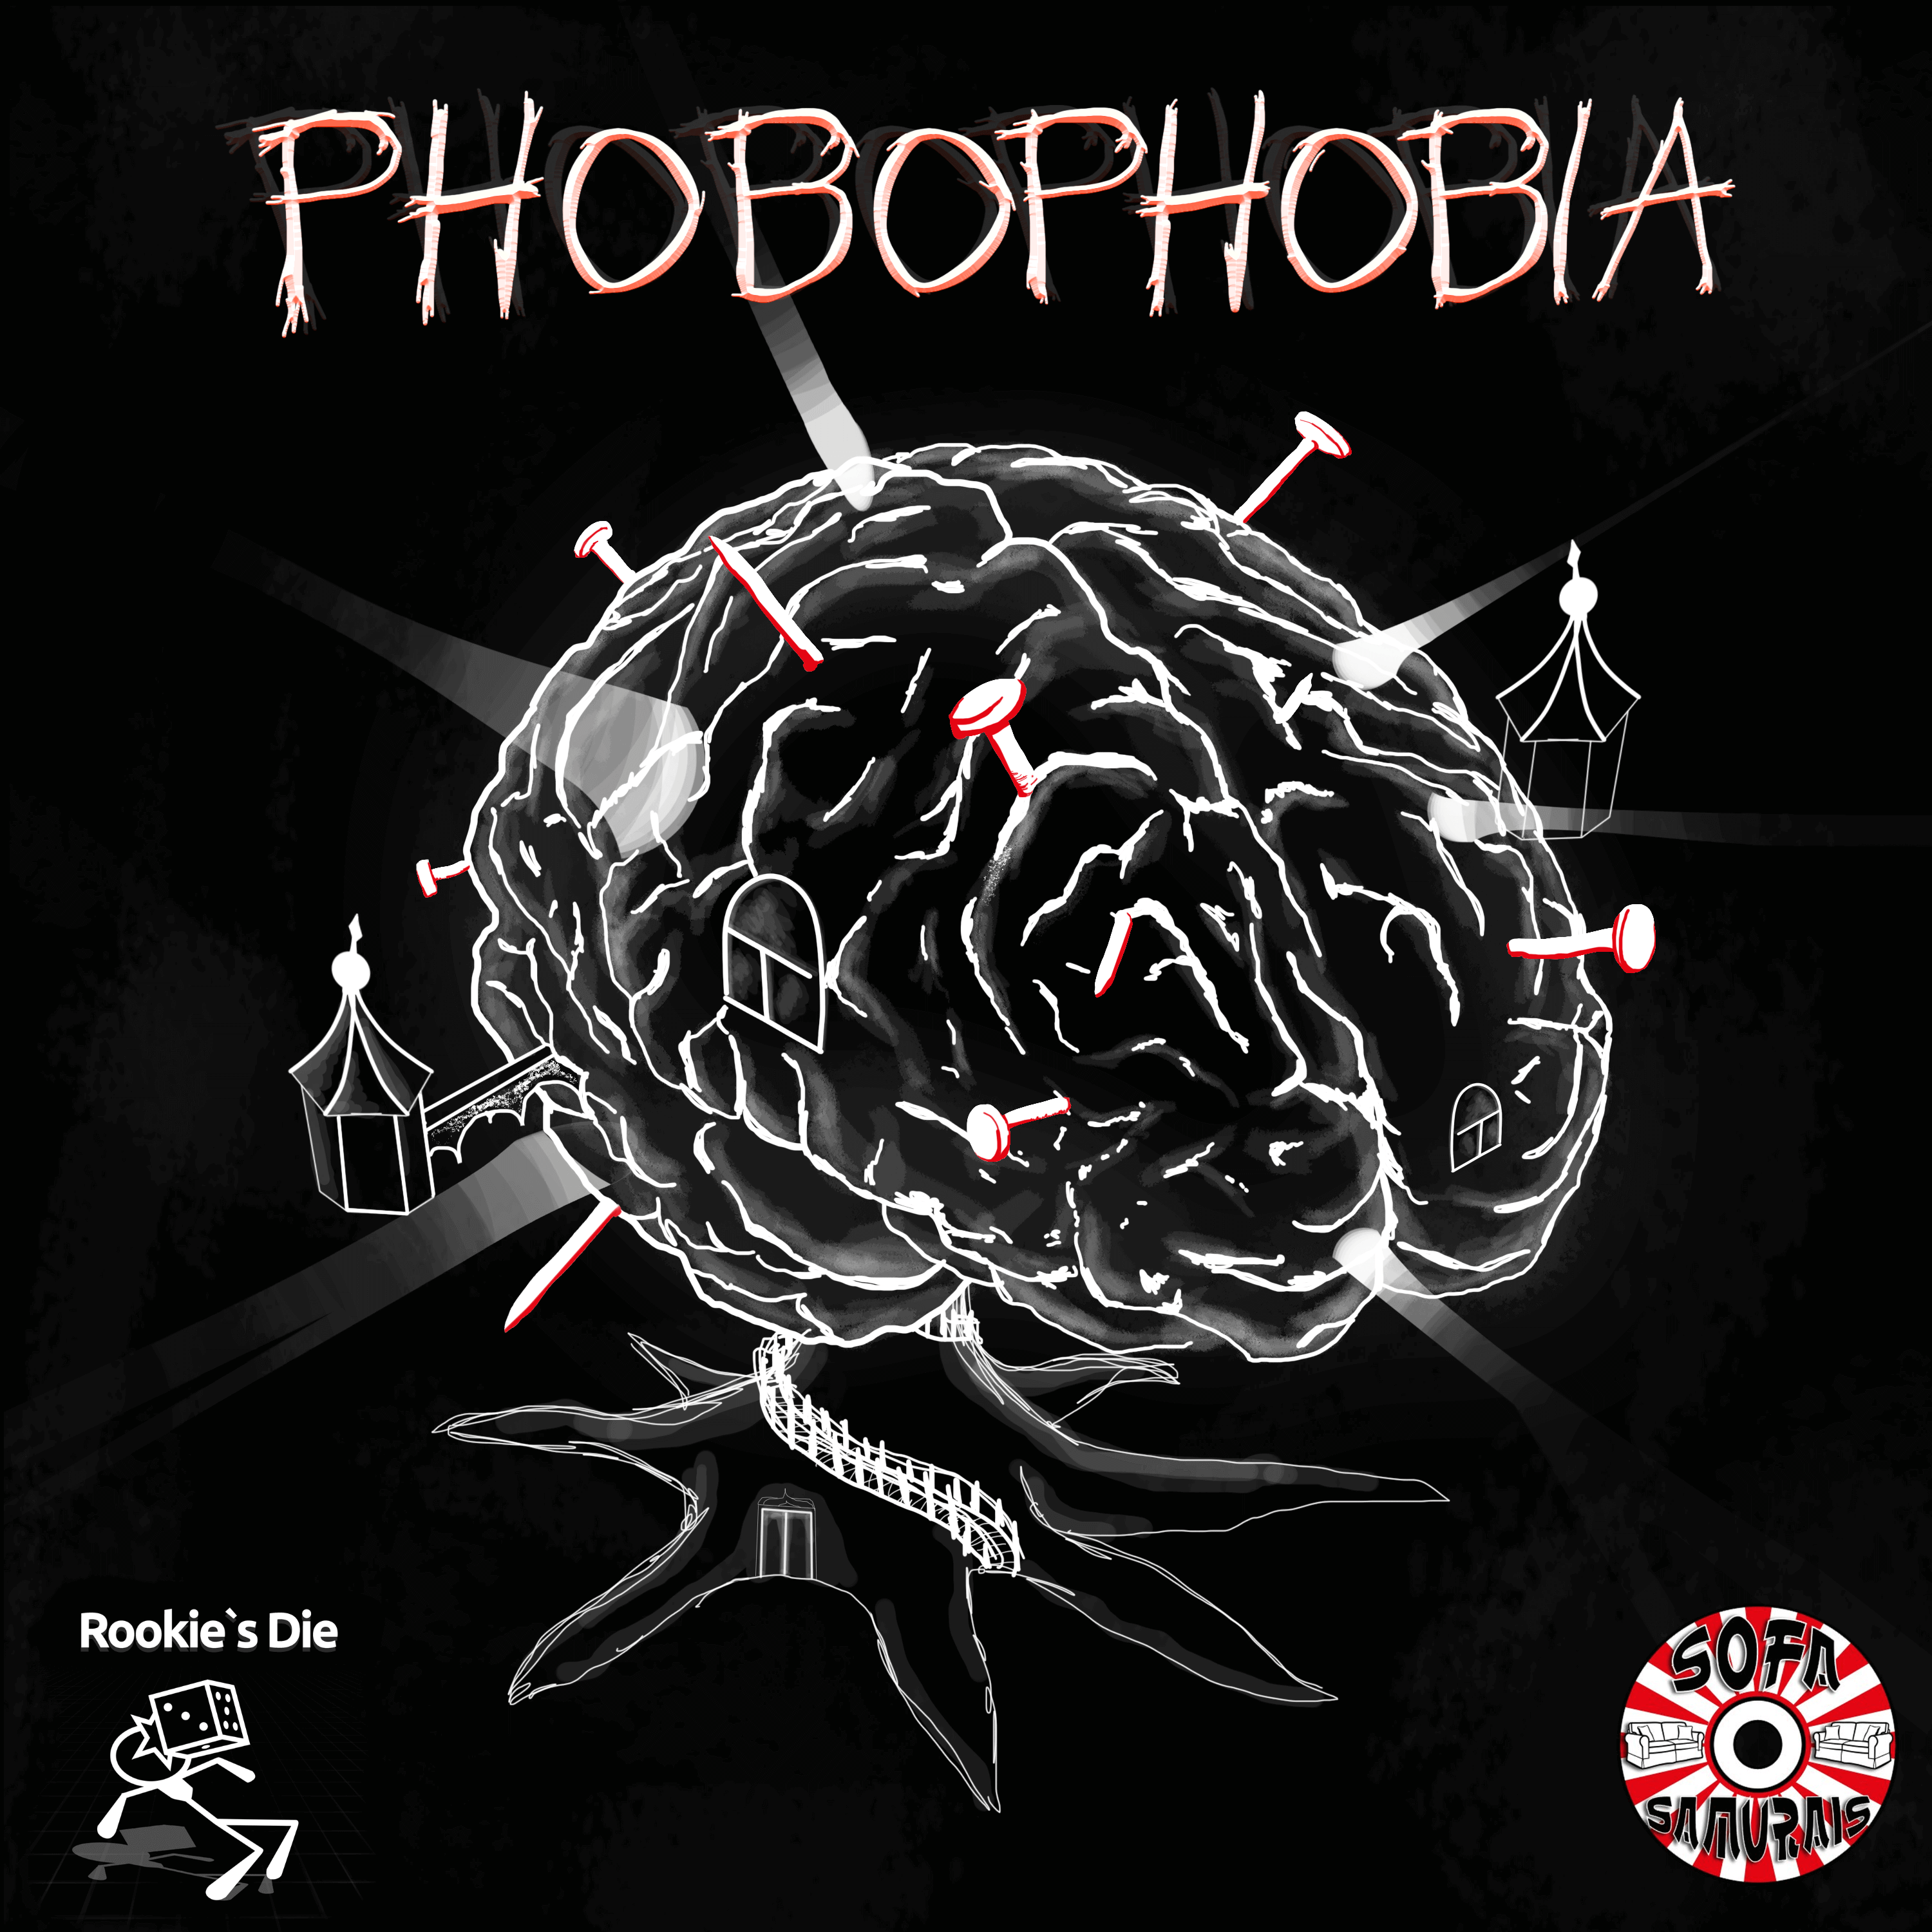 PhobophobiaCover3 Compressed